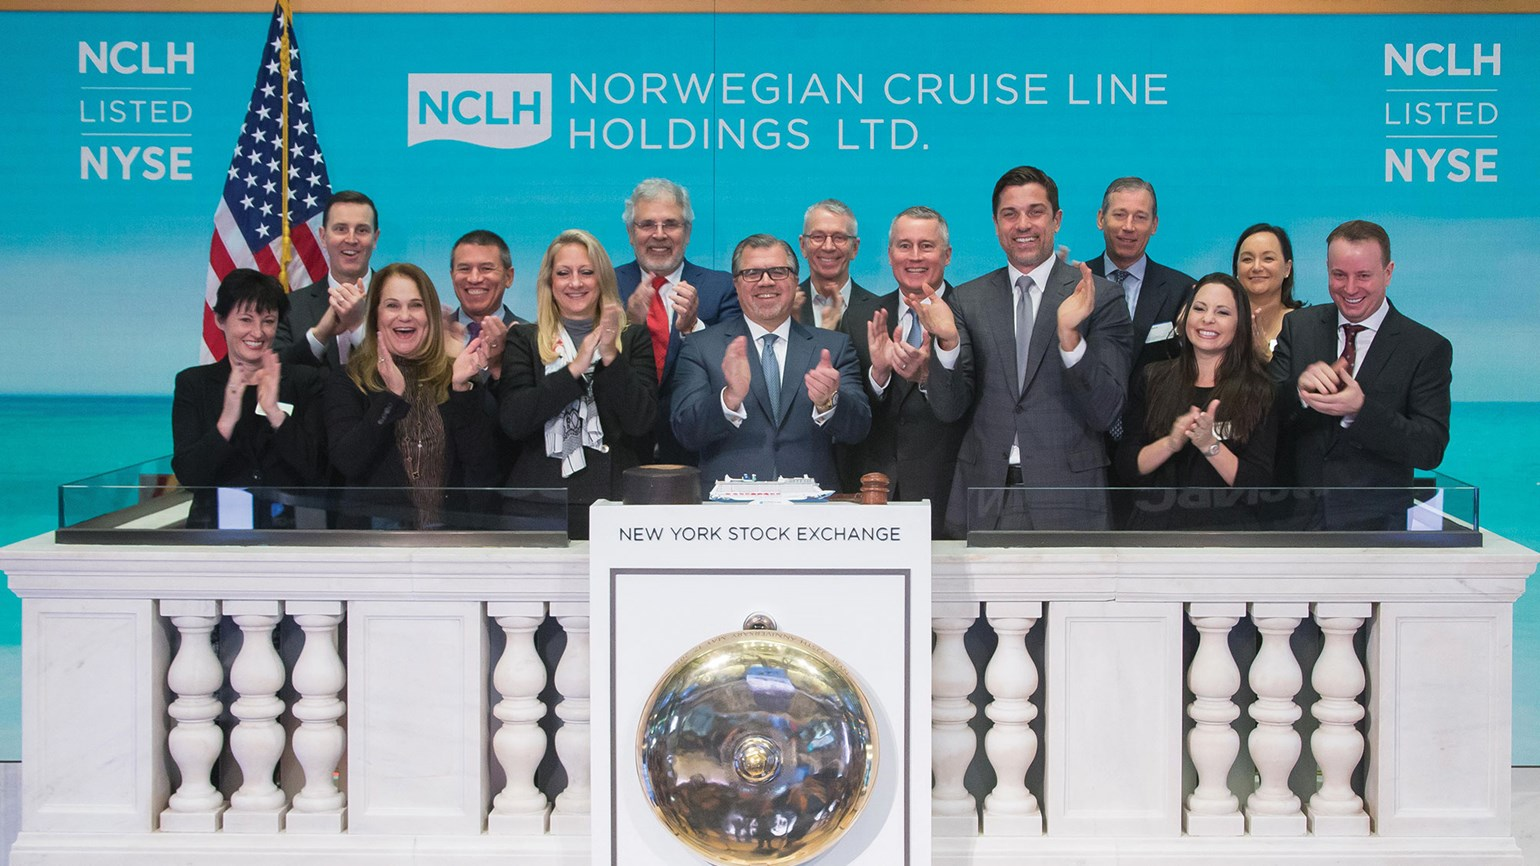 Norwegian Cruise Line rings NYSE opening bell